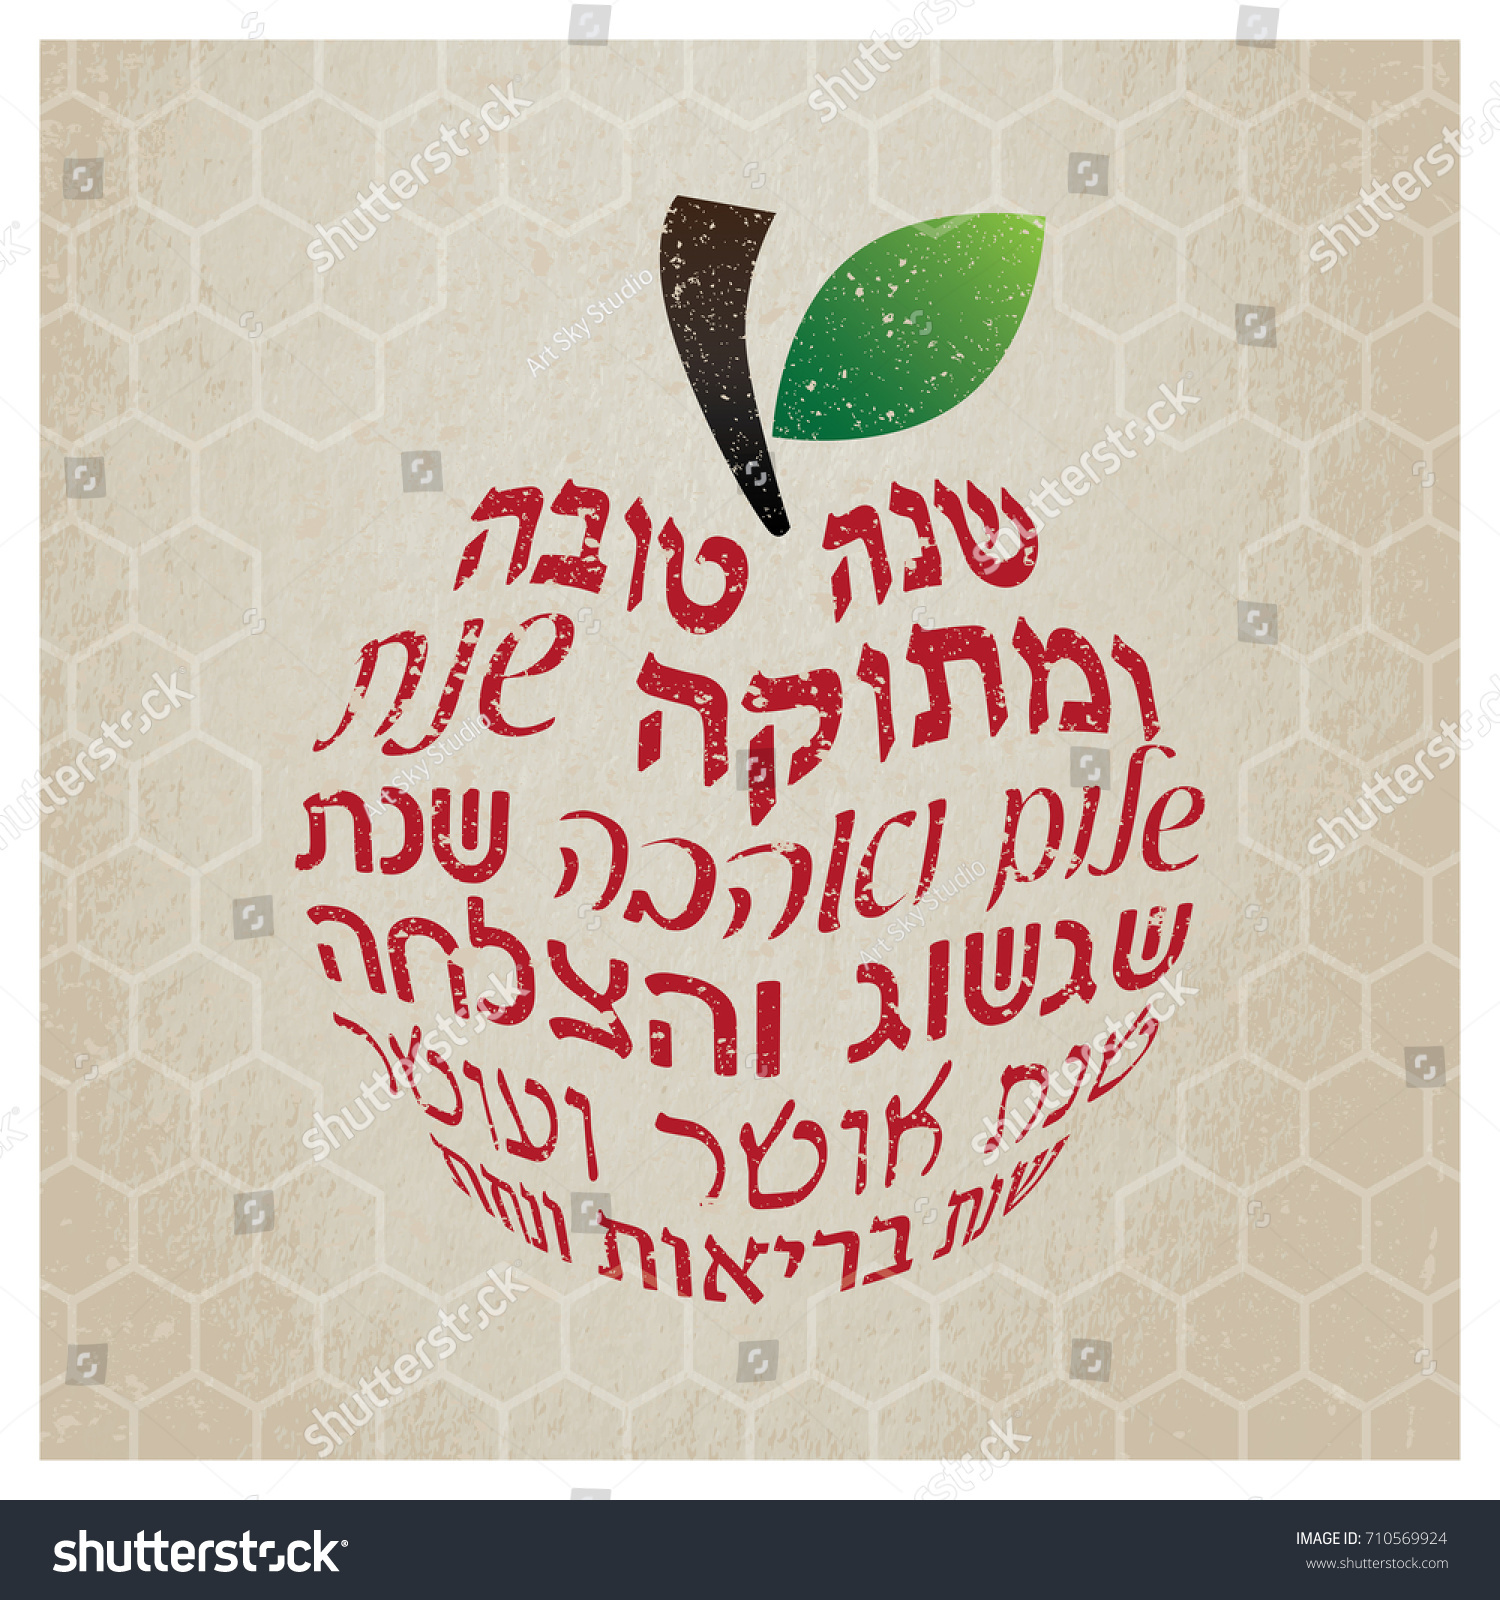 Rosh hashanah vector greeting card 3d stock vector 710569924 rosh hashanah vector greeting card with 3d text best wishes happiness wellness peace kristyandbryce Choice Image